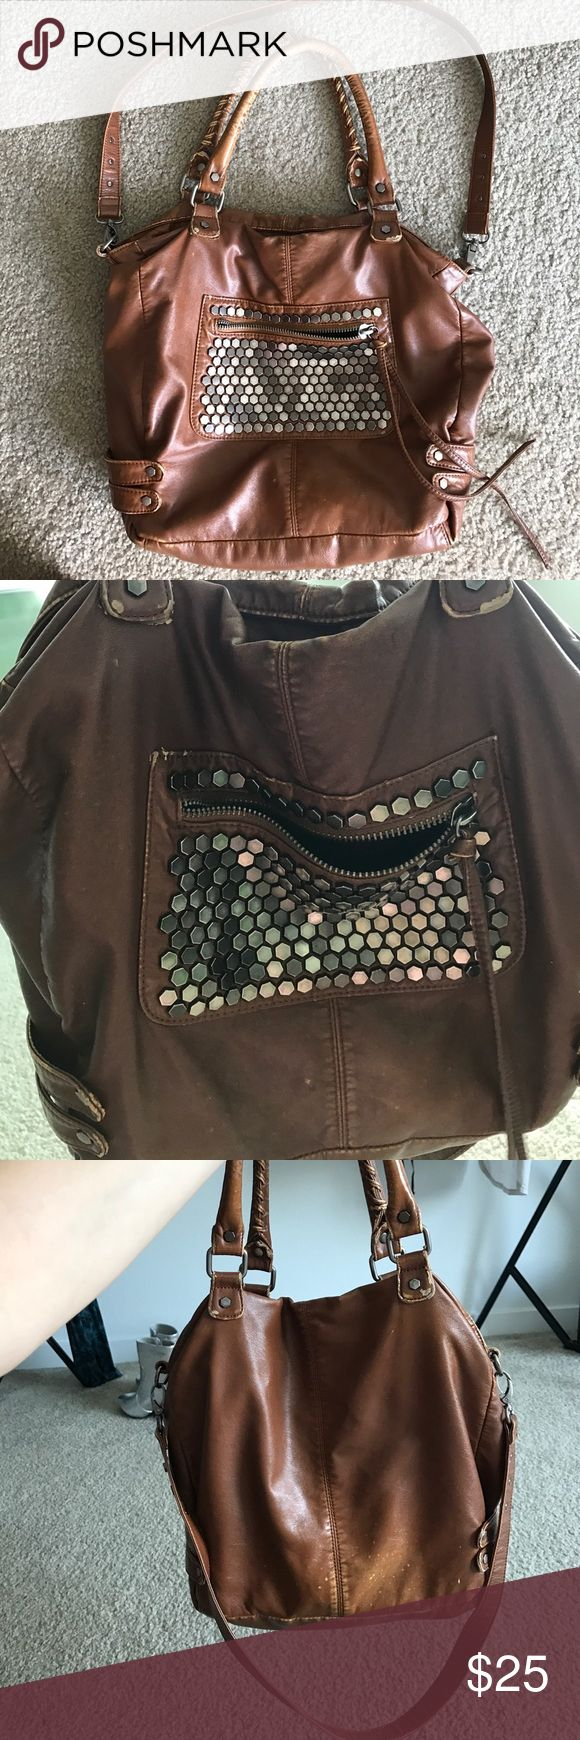 Pins and needles urban outfitters purse Coin detailed brown pins and needles purse from urban outfitters. Large bag holds a lot, some slight spotting (natural looking wear and tear) otherwise great condition. Sturdy bag Urban Outfitters Bags Totes